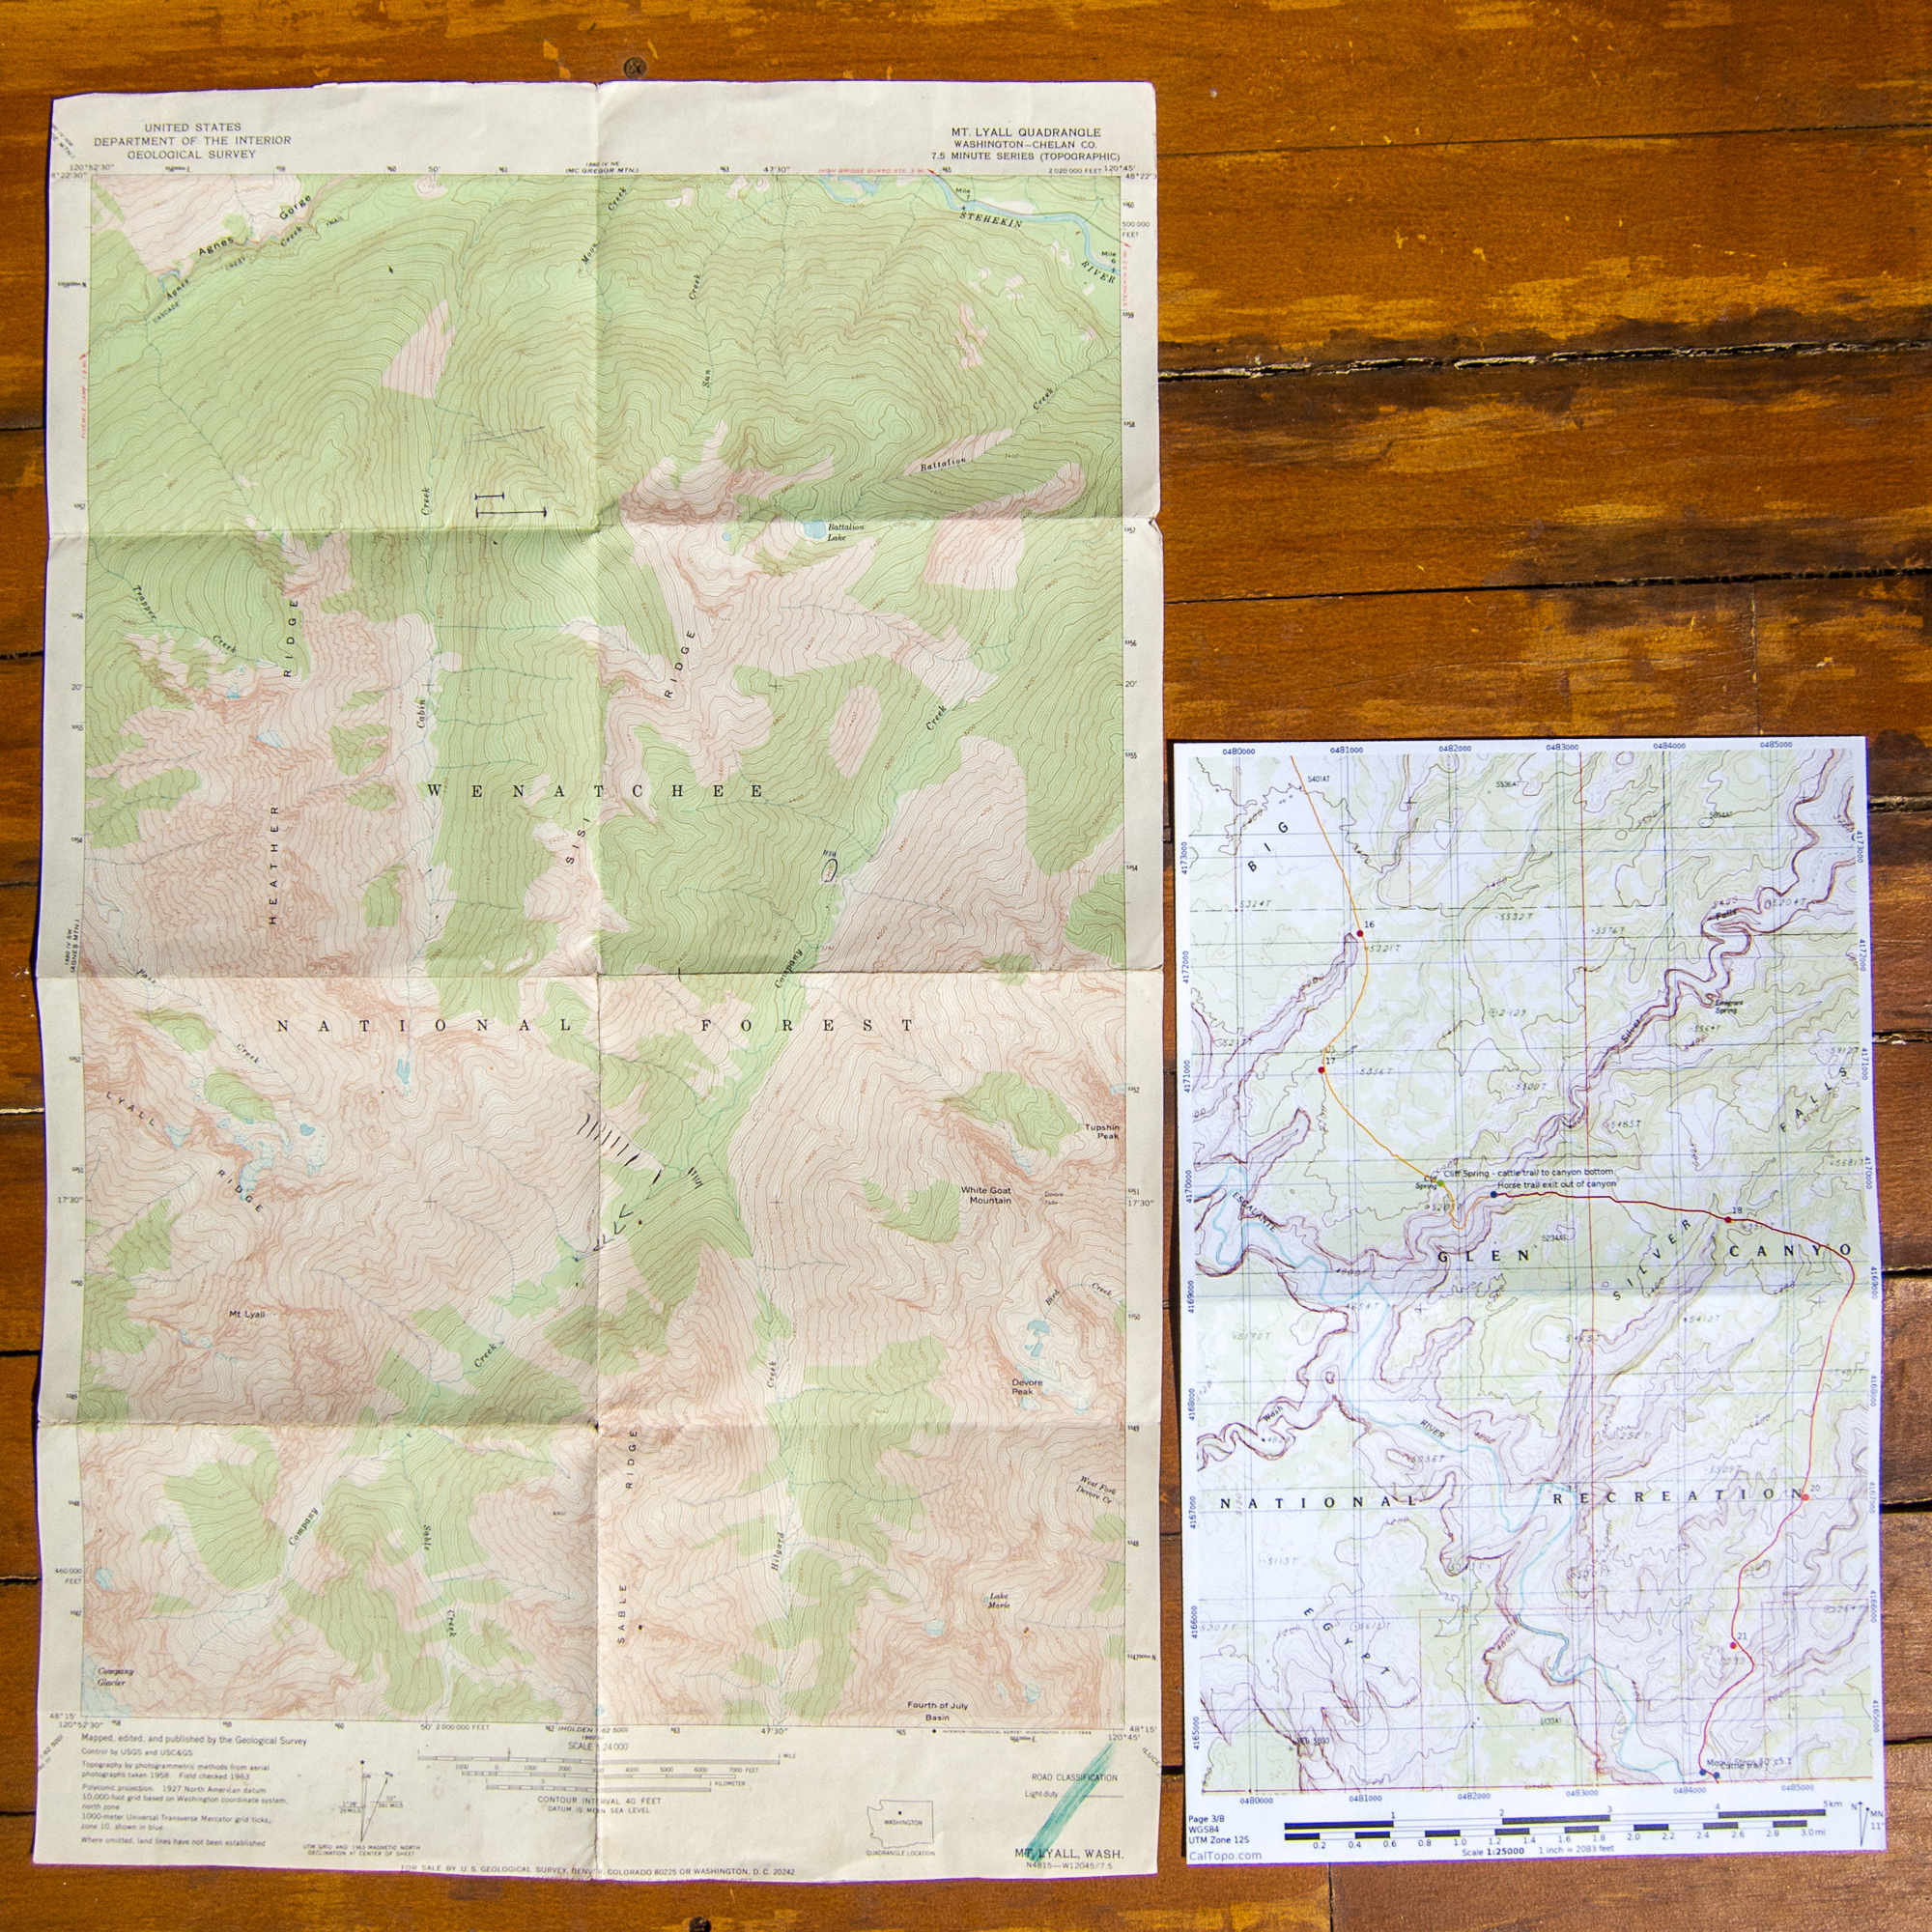 Backpacking Maps 101: Types, Formats, And Sources